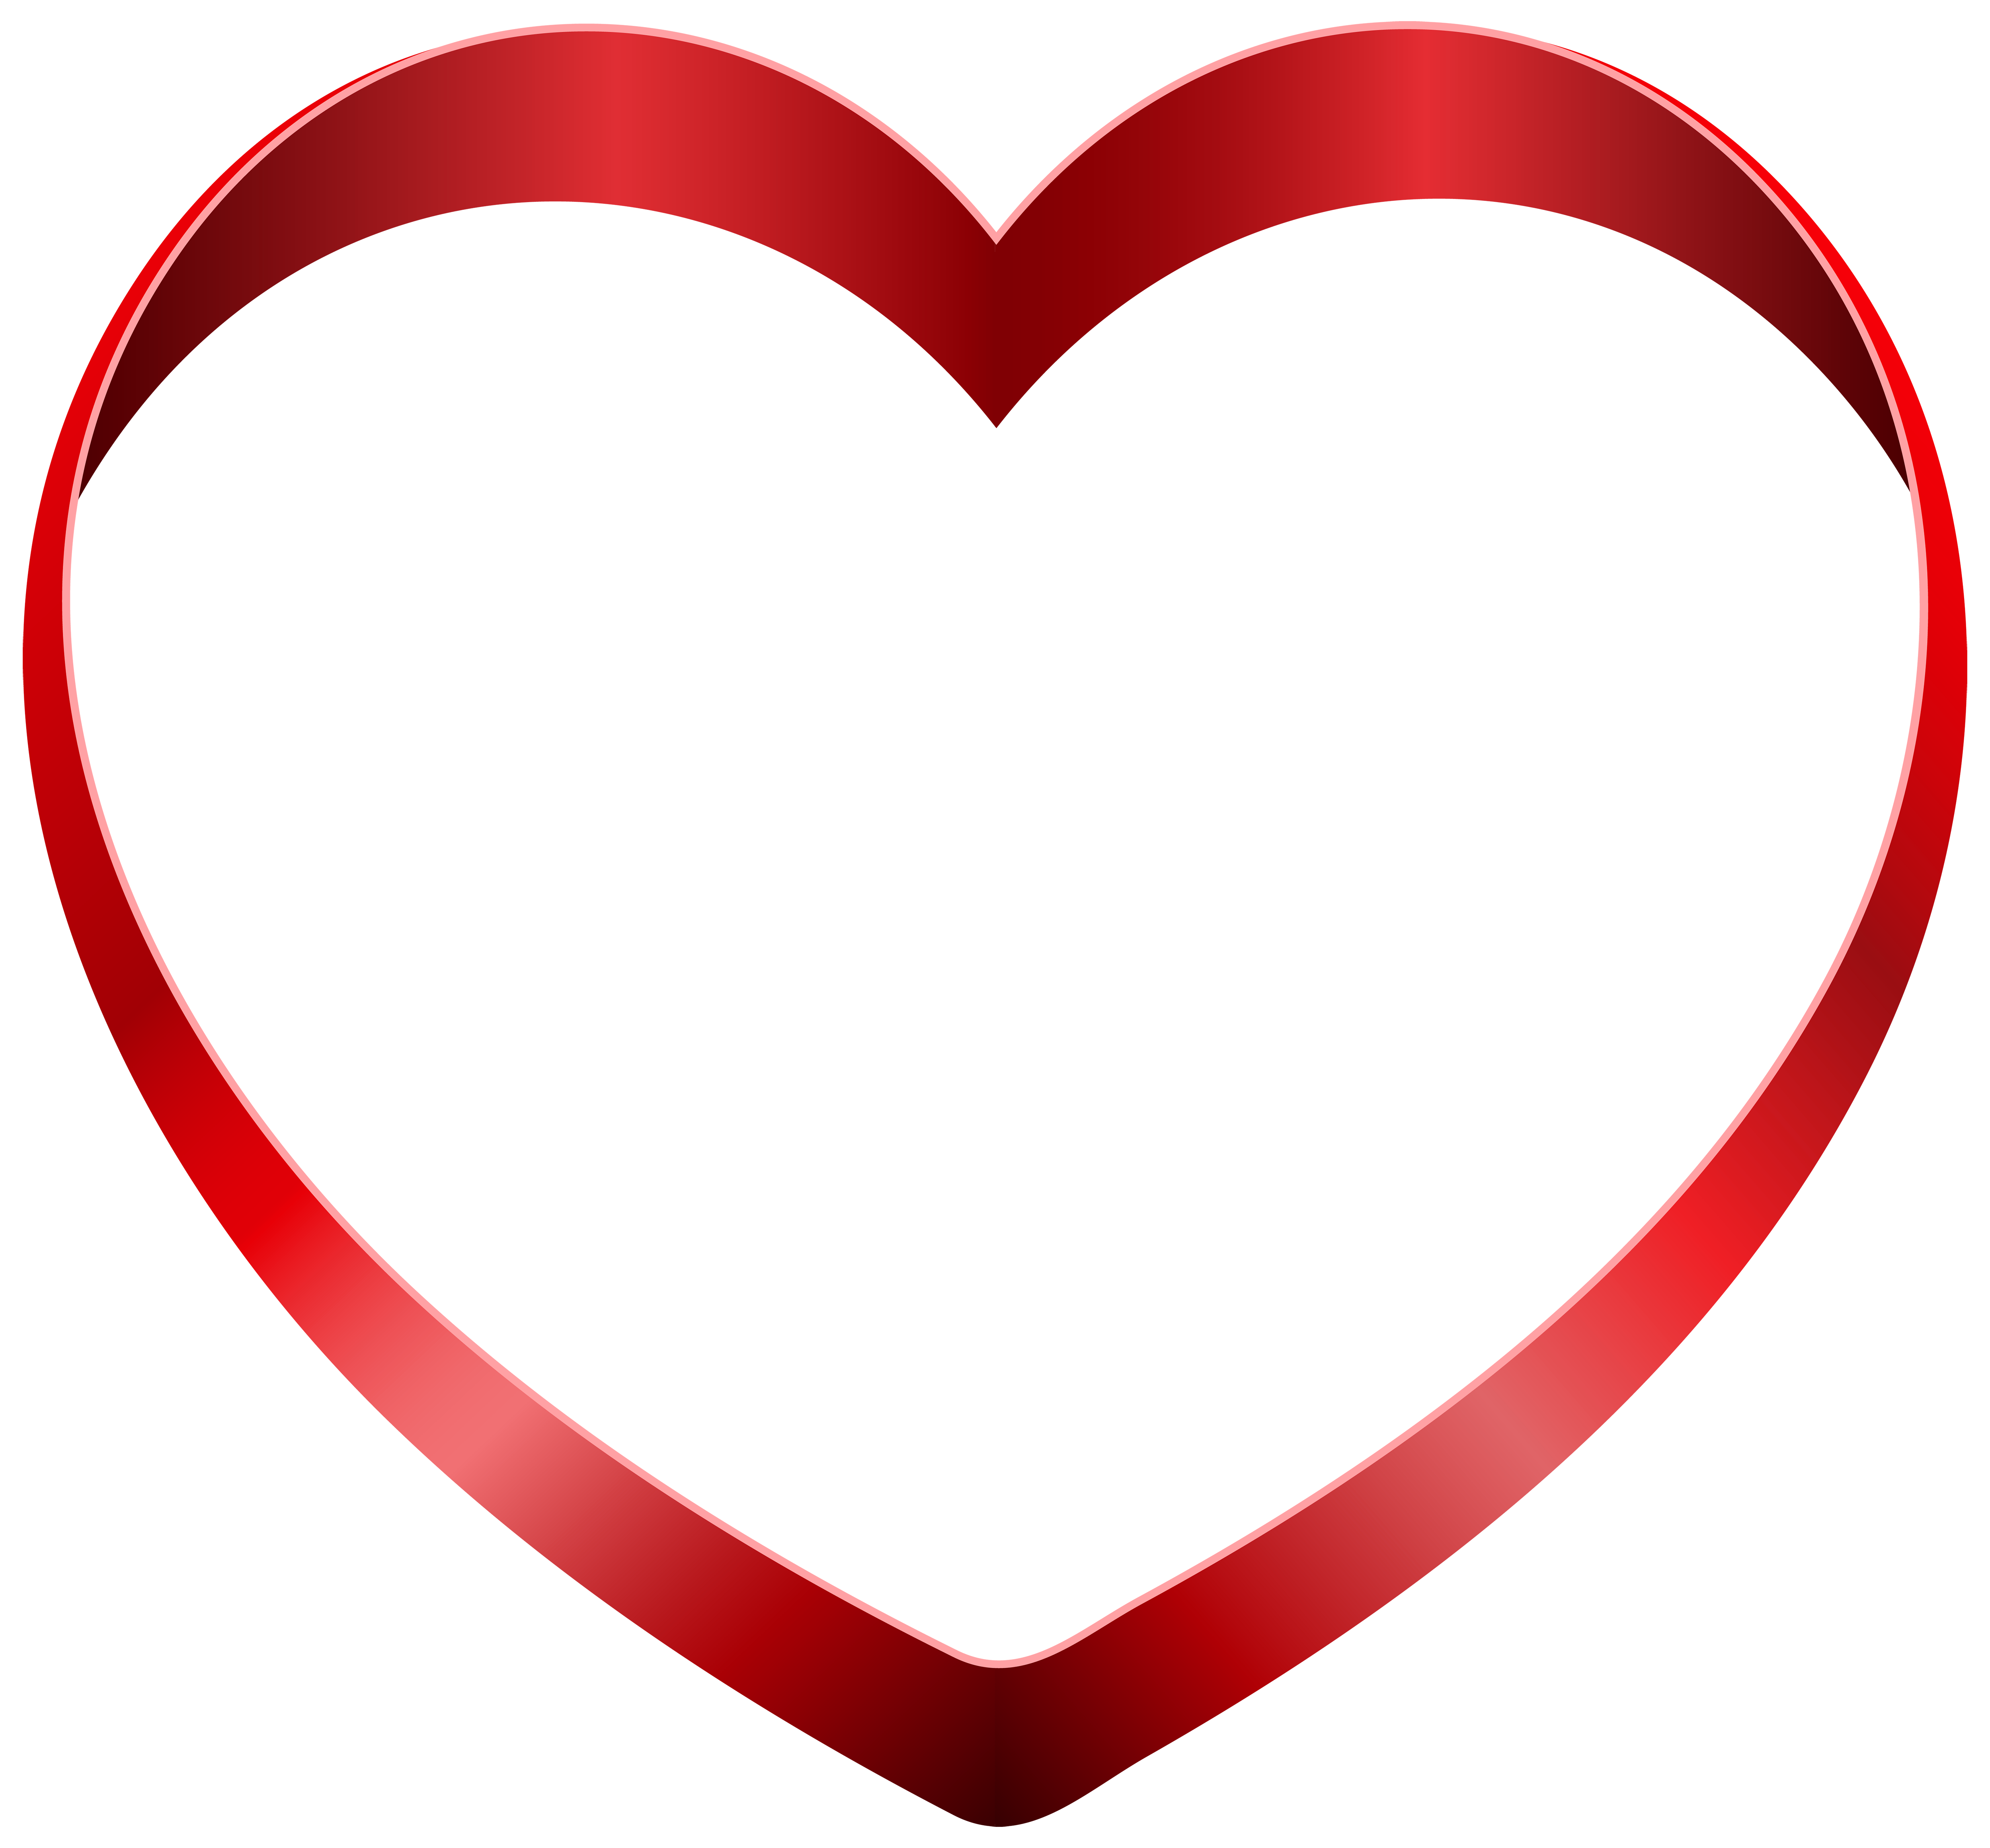 High quality transparent clipart graphic royalty free download Transparent Heart PNG Clipart - Best WEB Clipart graphic royalty free download